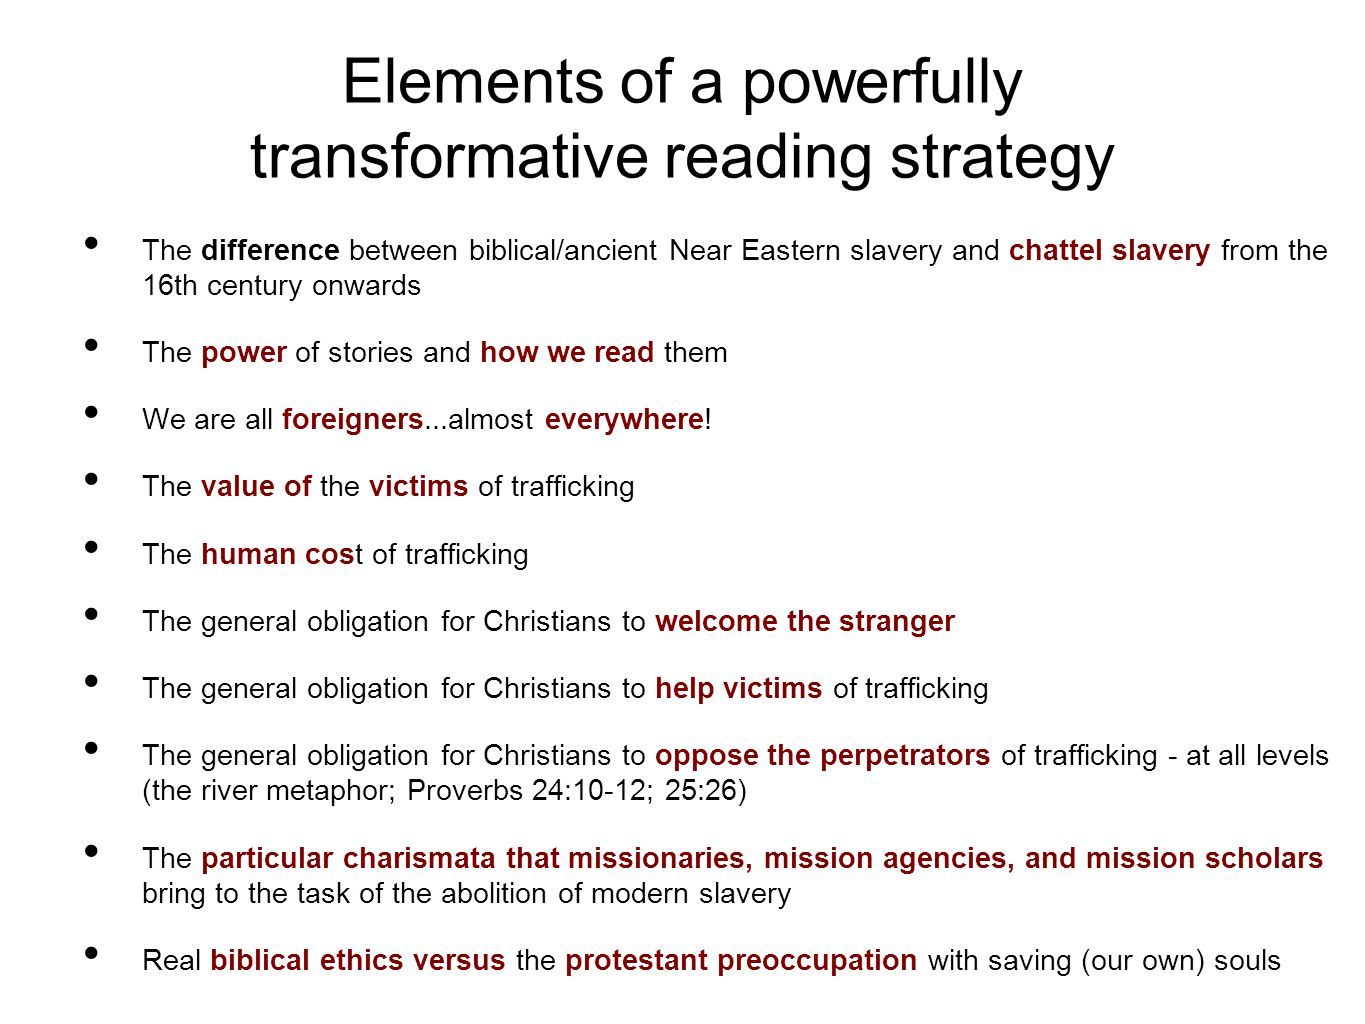 Elements of a powerfully transformative reading strategy The difference between biblical/ancient Near Eastern slavery and chattel slavery from the 16th century onwards The power of stories and how we read them We are all foreigners...almost everywhere.